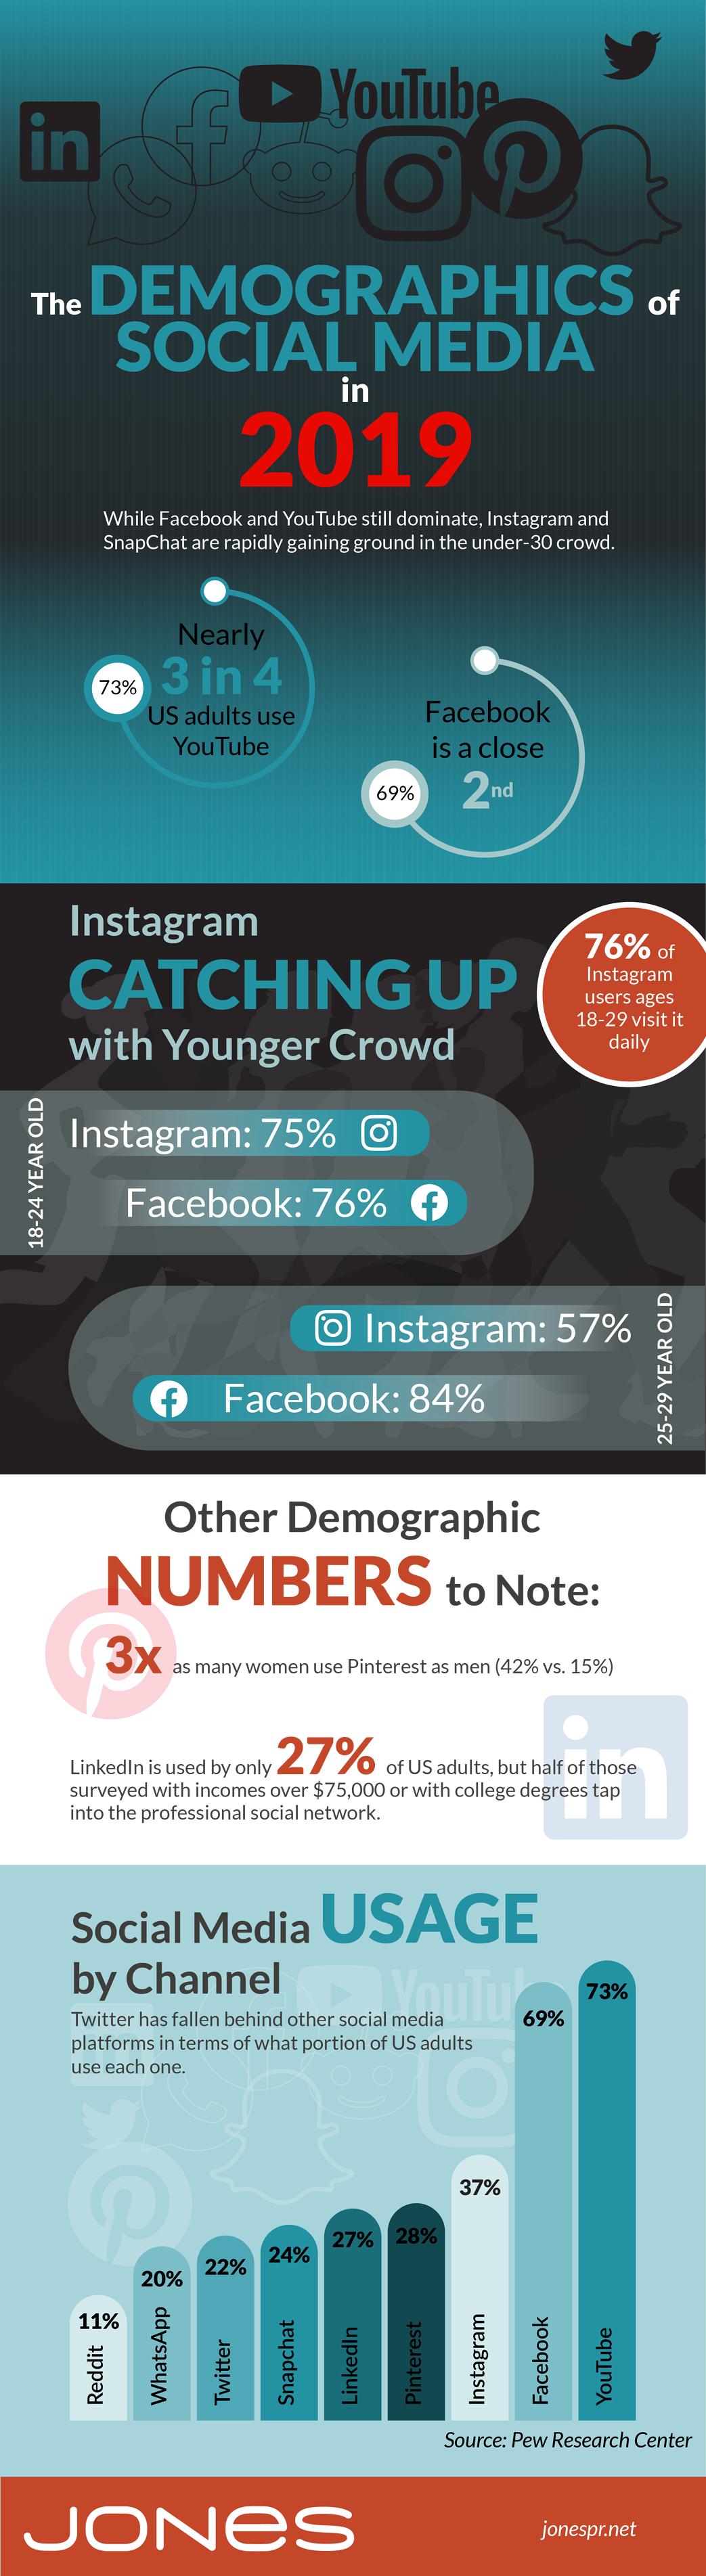 Infographic looks at social media usage stats